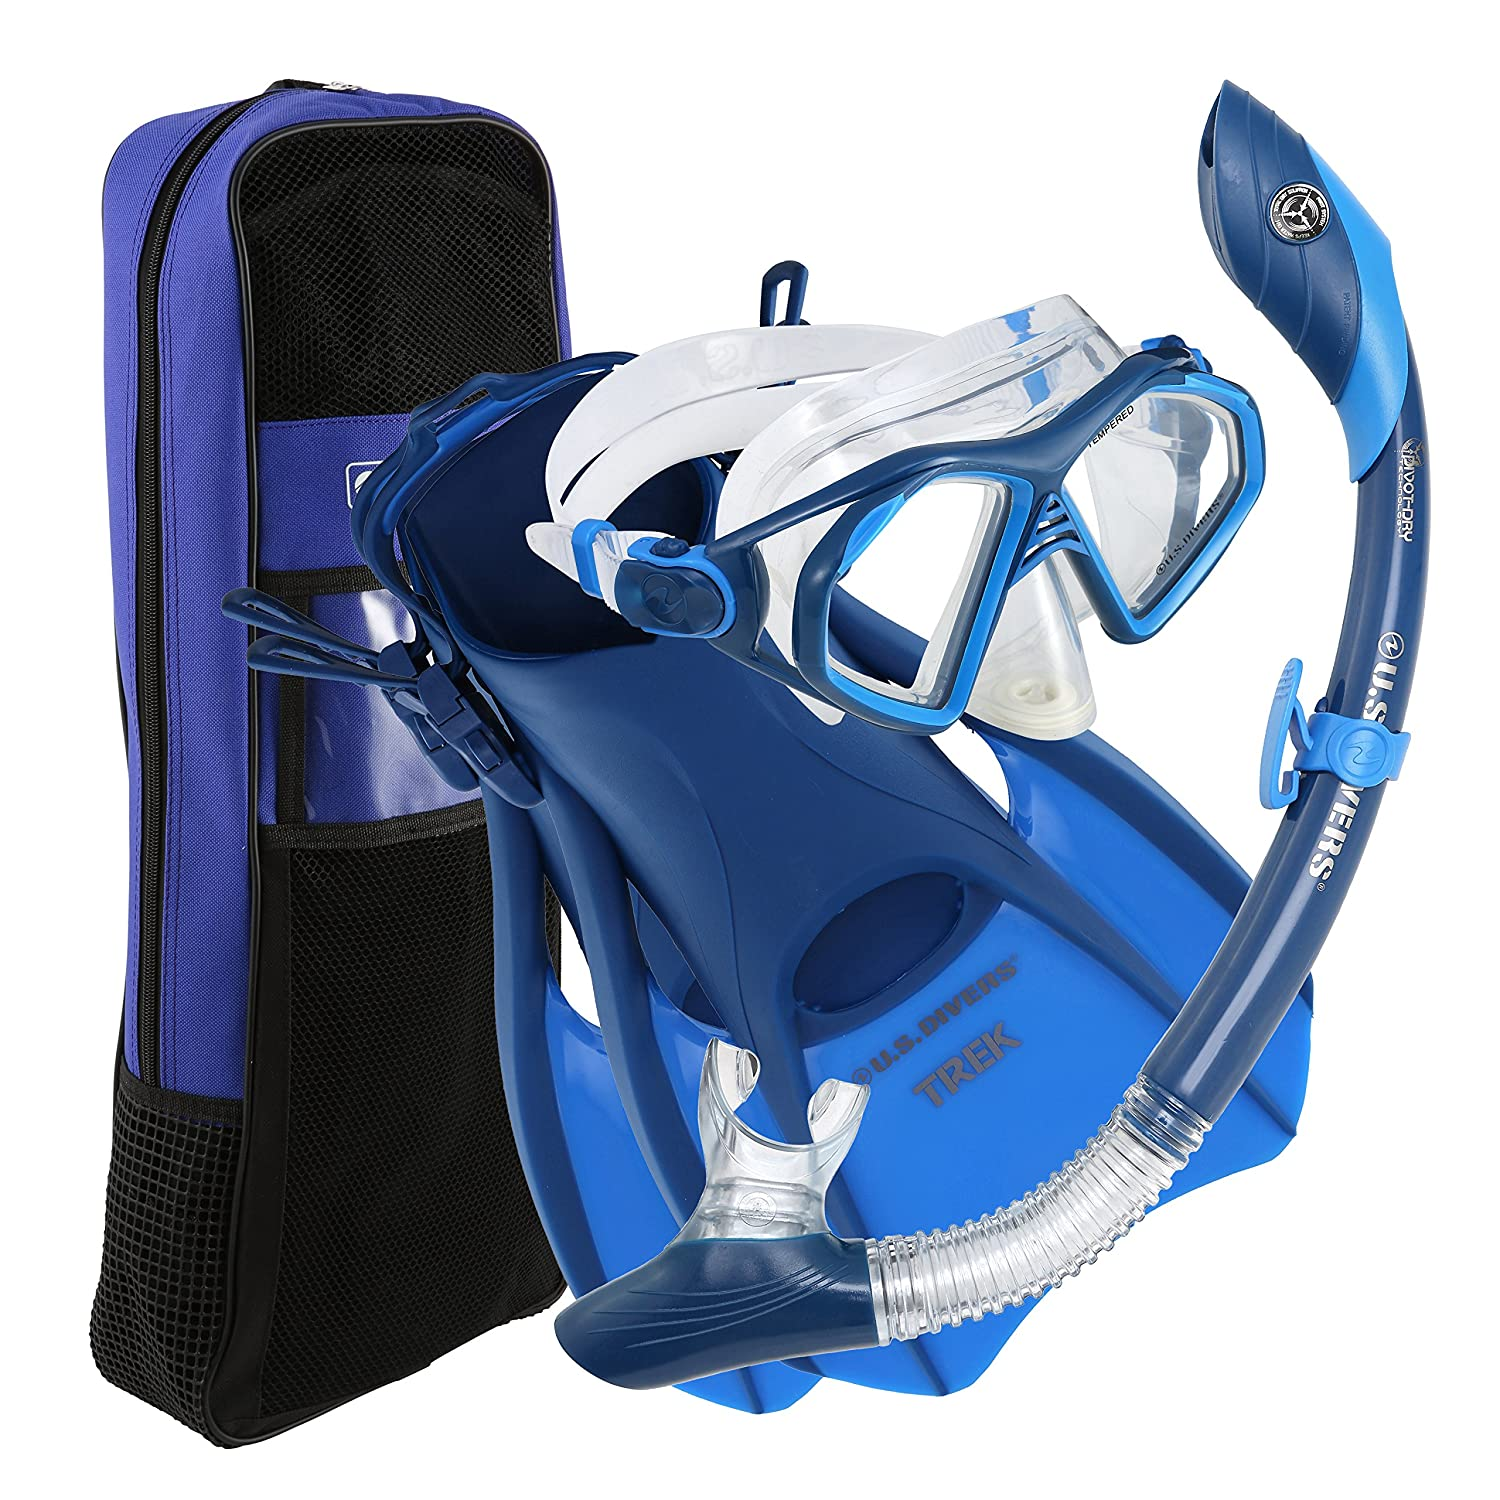 U.S. Divers Admiral Snorkeling Set - Premium Silicone Snorkel Mask, Trek Travel Fins, Dry Top Snorkel + Snorkeling Gear Bag, Blue, Large